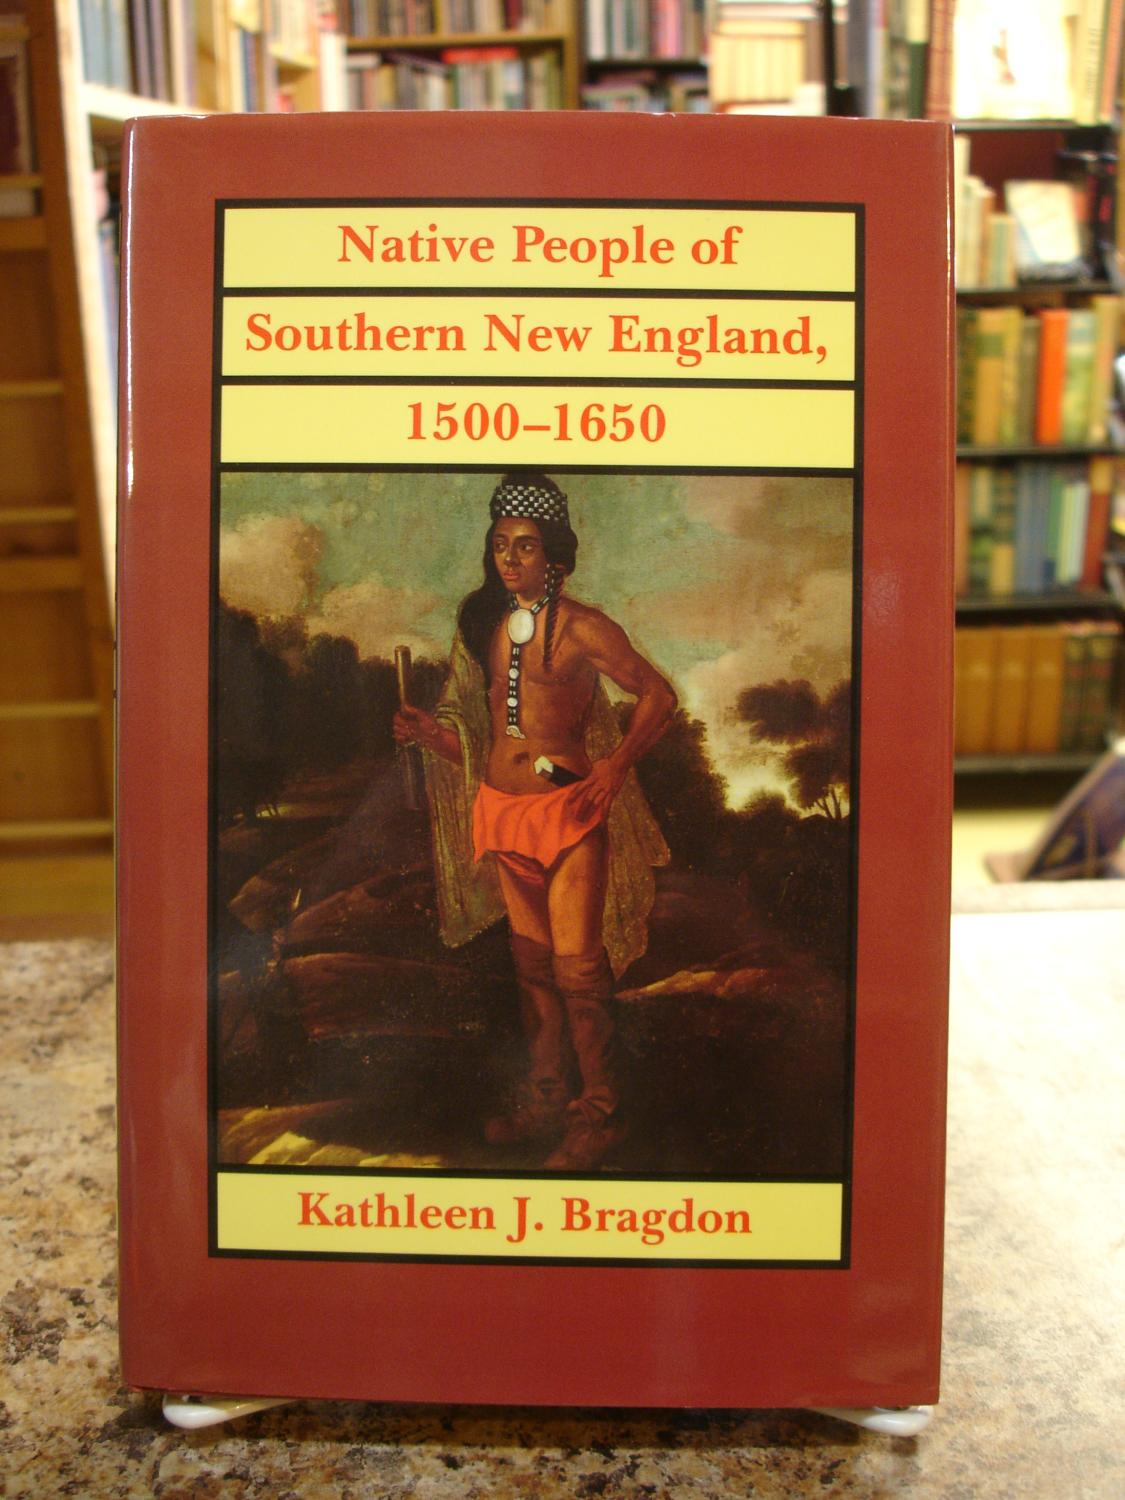 1650 1500 Native People of Southern New England